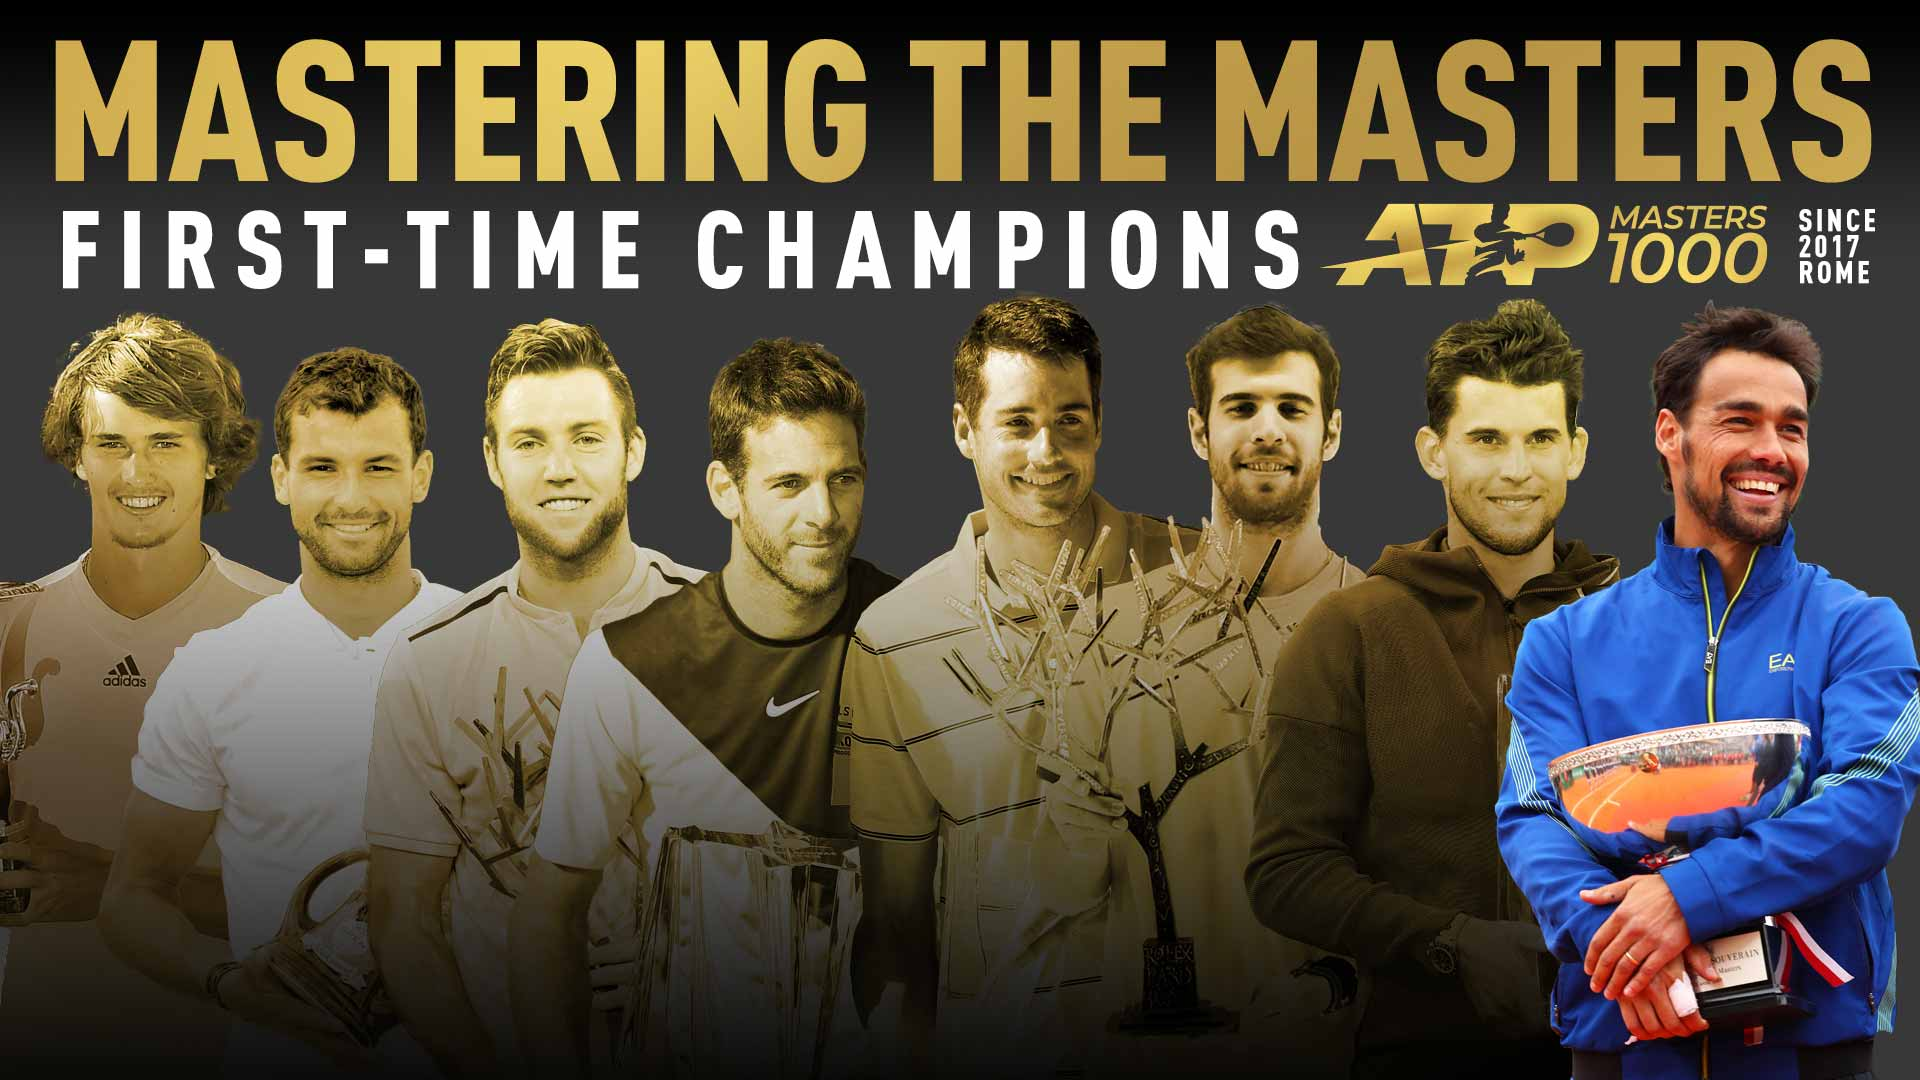 Eight recent first-time Masters 1000 winners